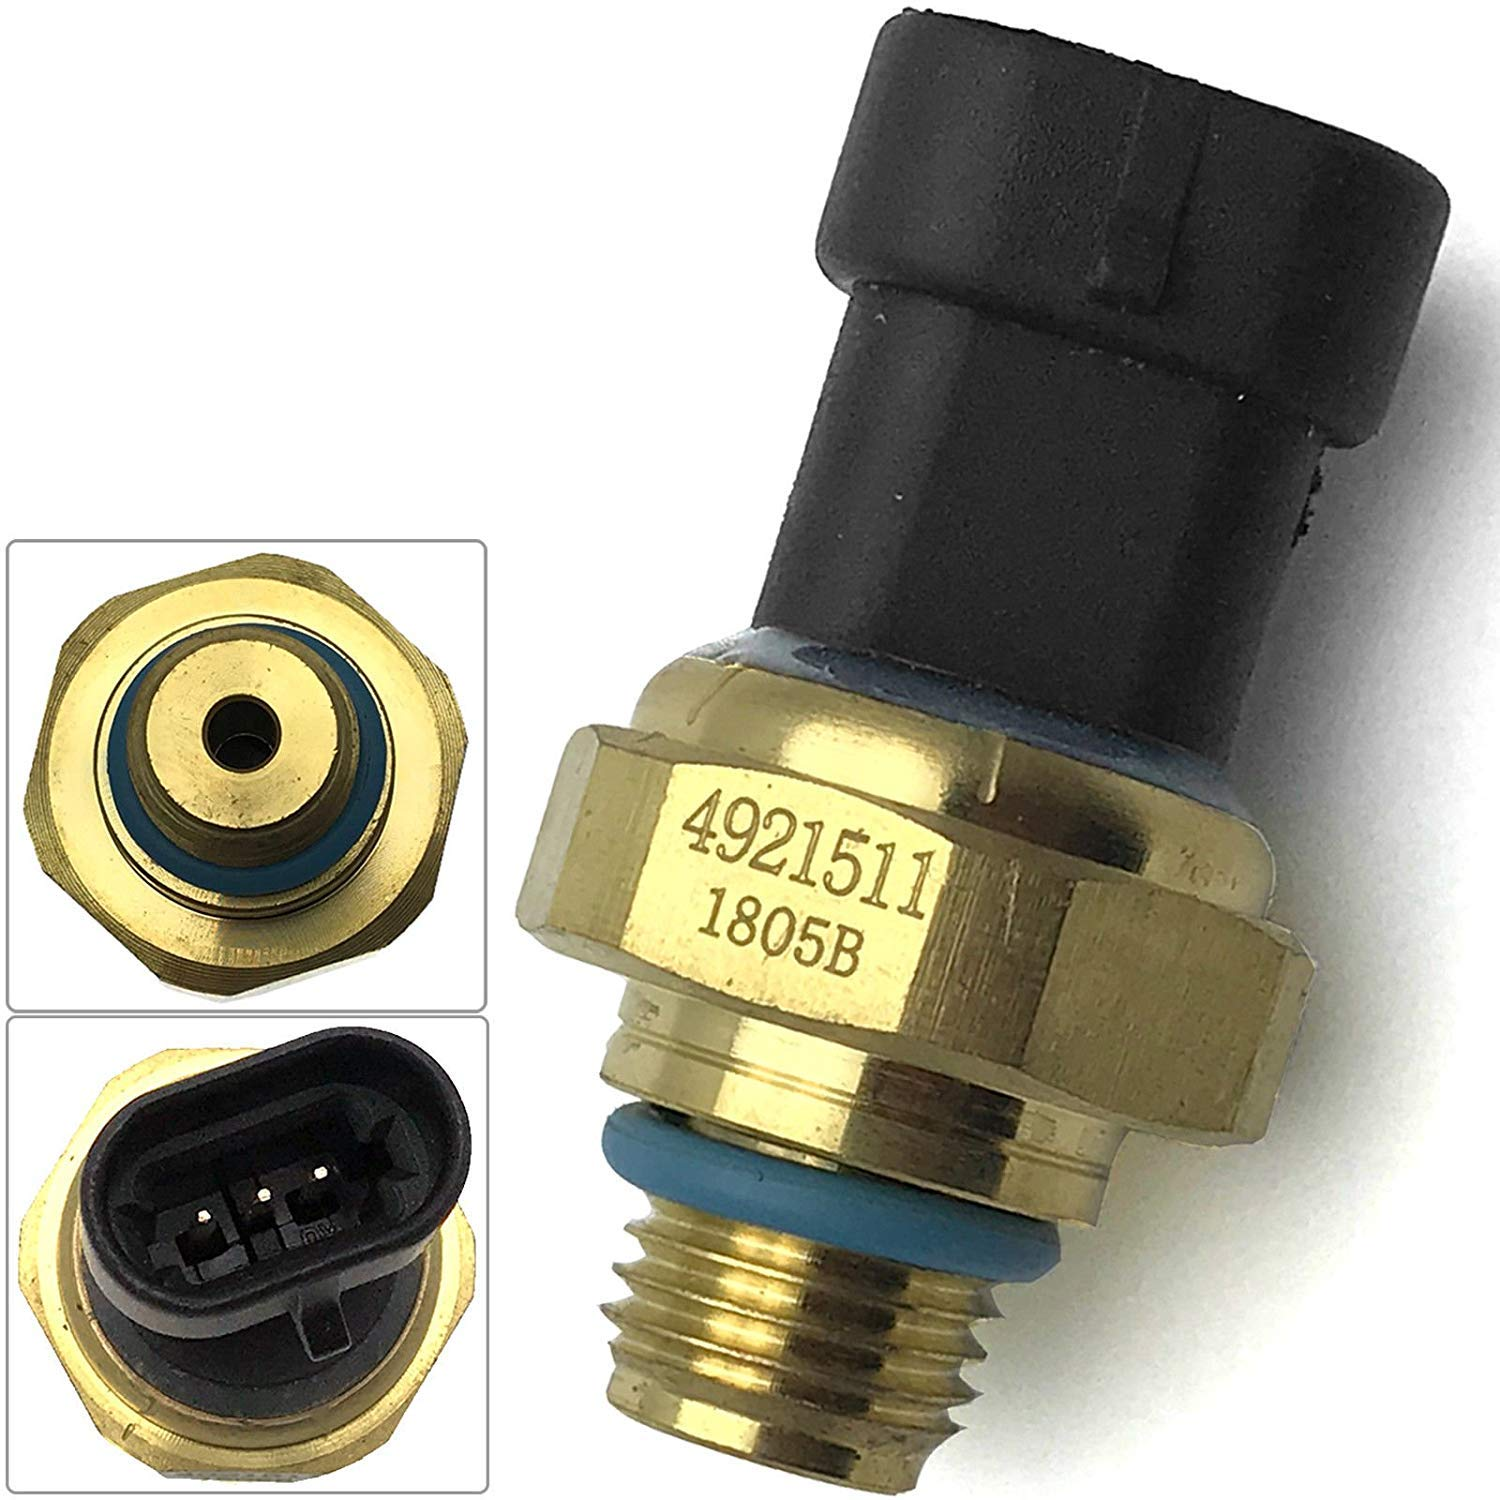 Brand New Oil Pressure Sensor Fits Cummins Dodge Ram 2500 3500 5.9L 24V Diesel 1998.5-2002